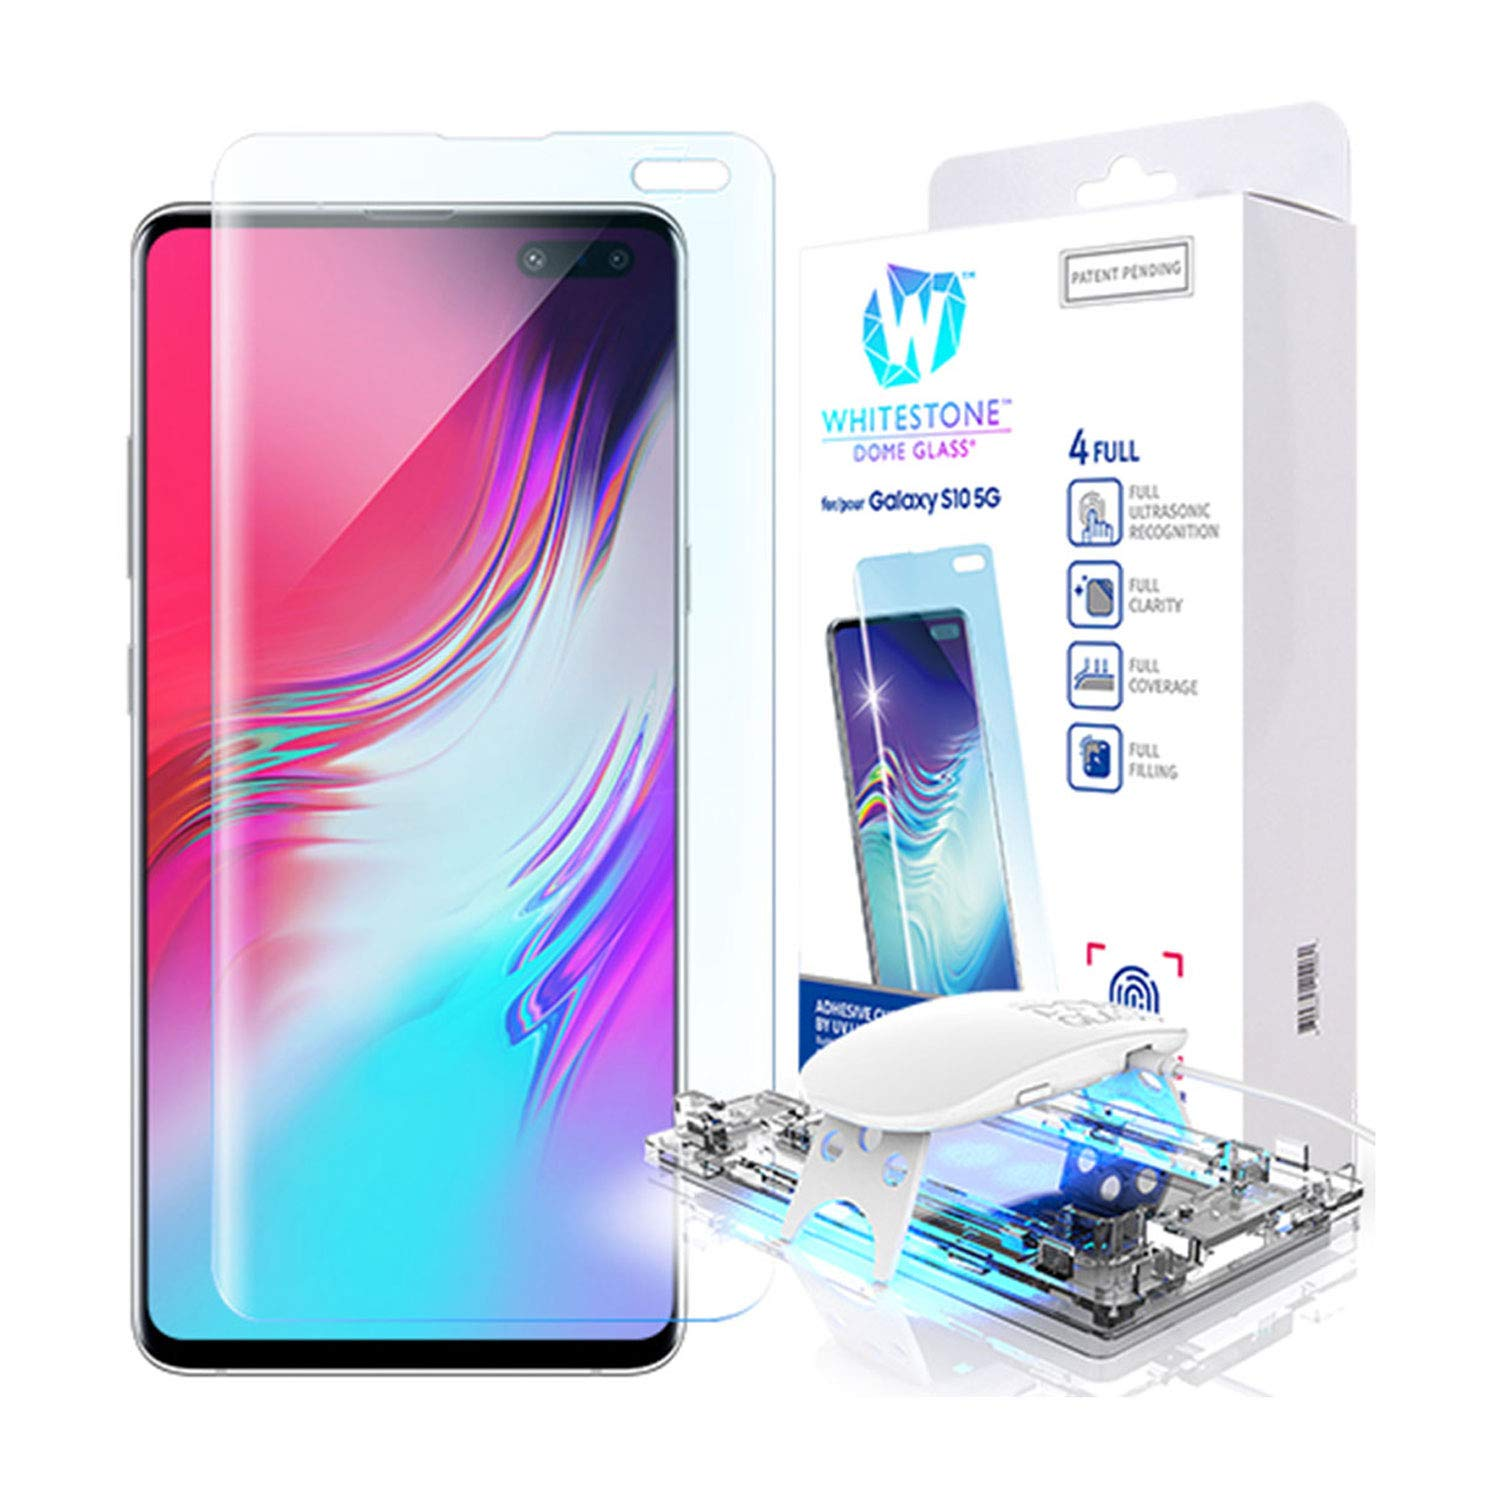 Galaxy S10 5G Screen Protector, [Dome Glass] Full 3D Curved Edge Tempered Glass [Exclusive Solution for Ultrasonic Fingerprint] Easy Install Kit by Whitestone for Samsung Galaxy S10 5G (2019) - 1 Pack by Dome Glass